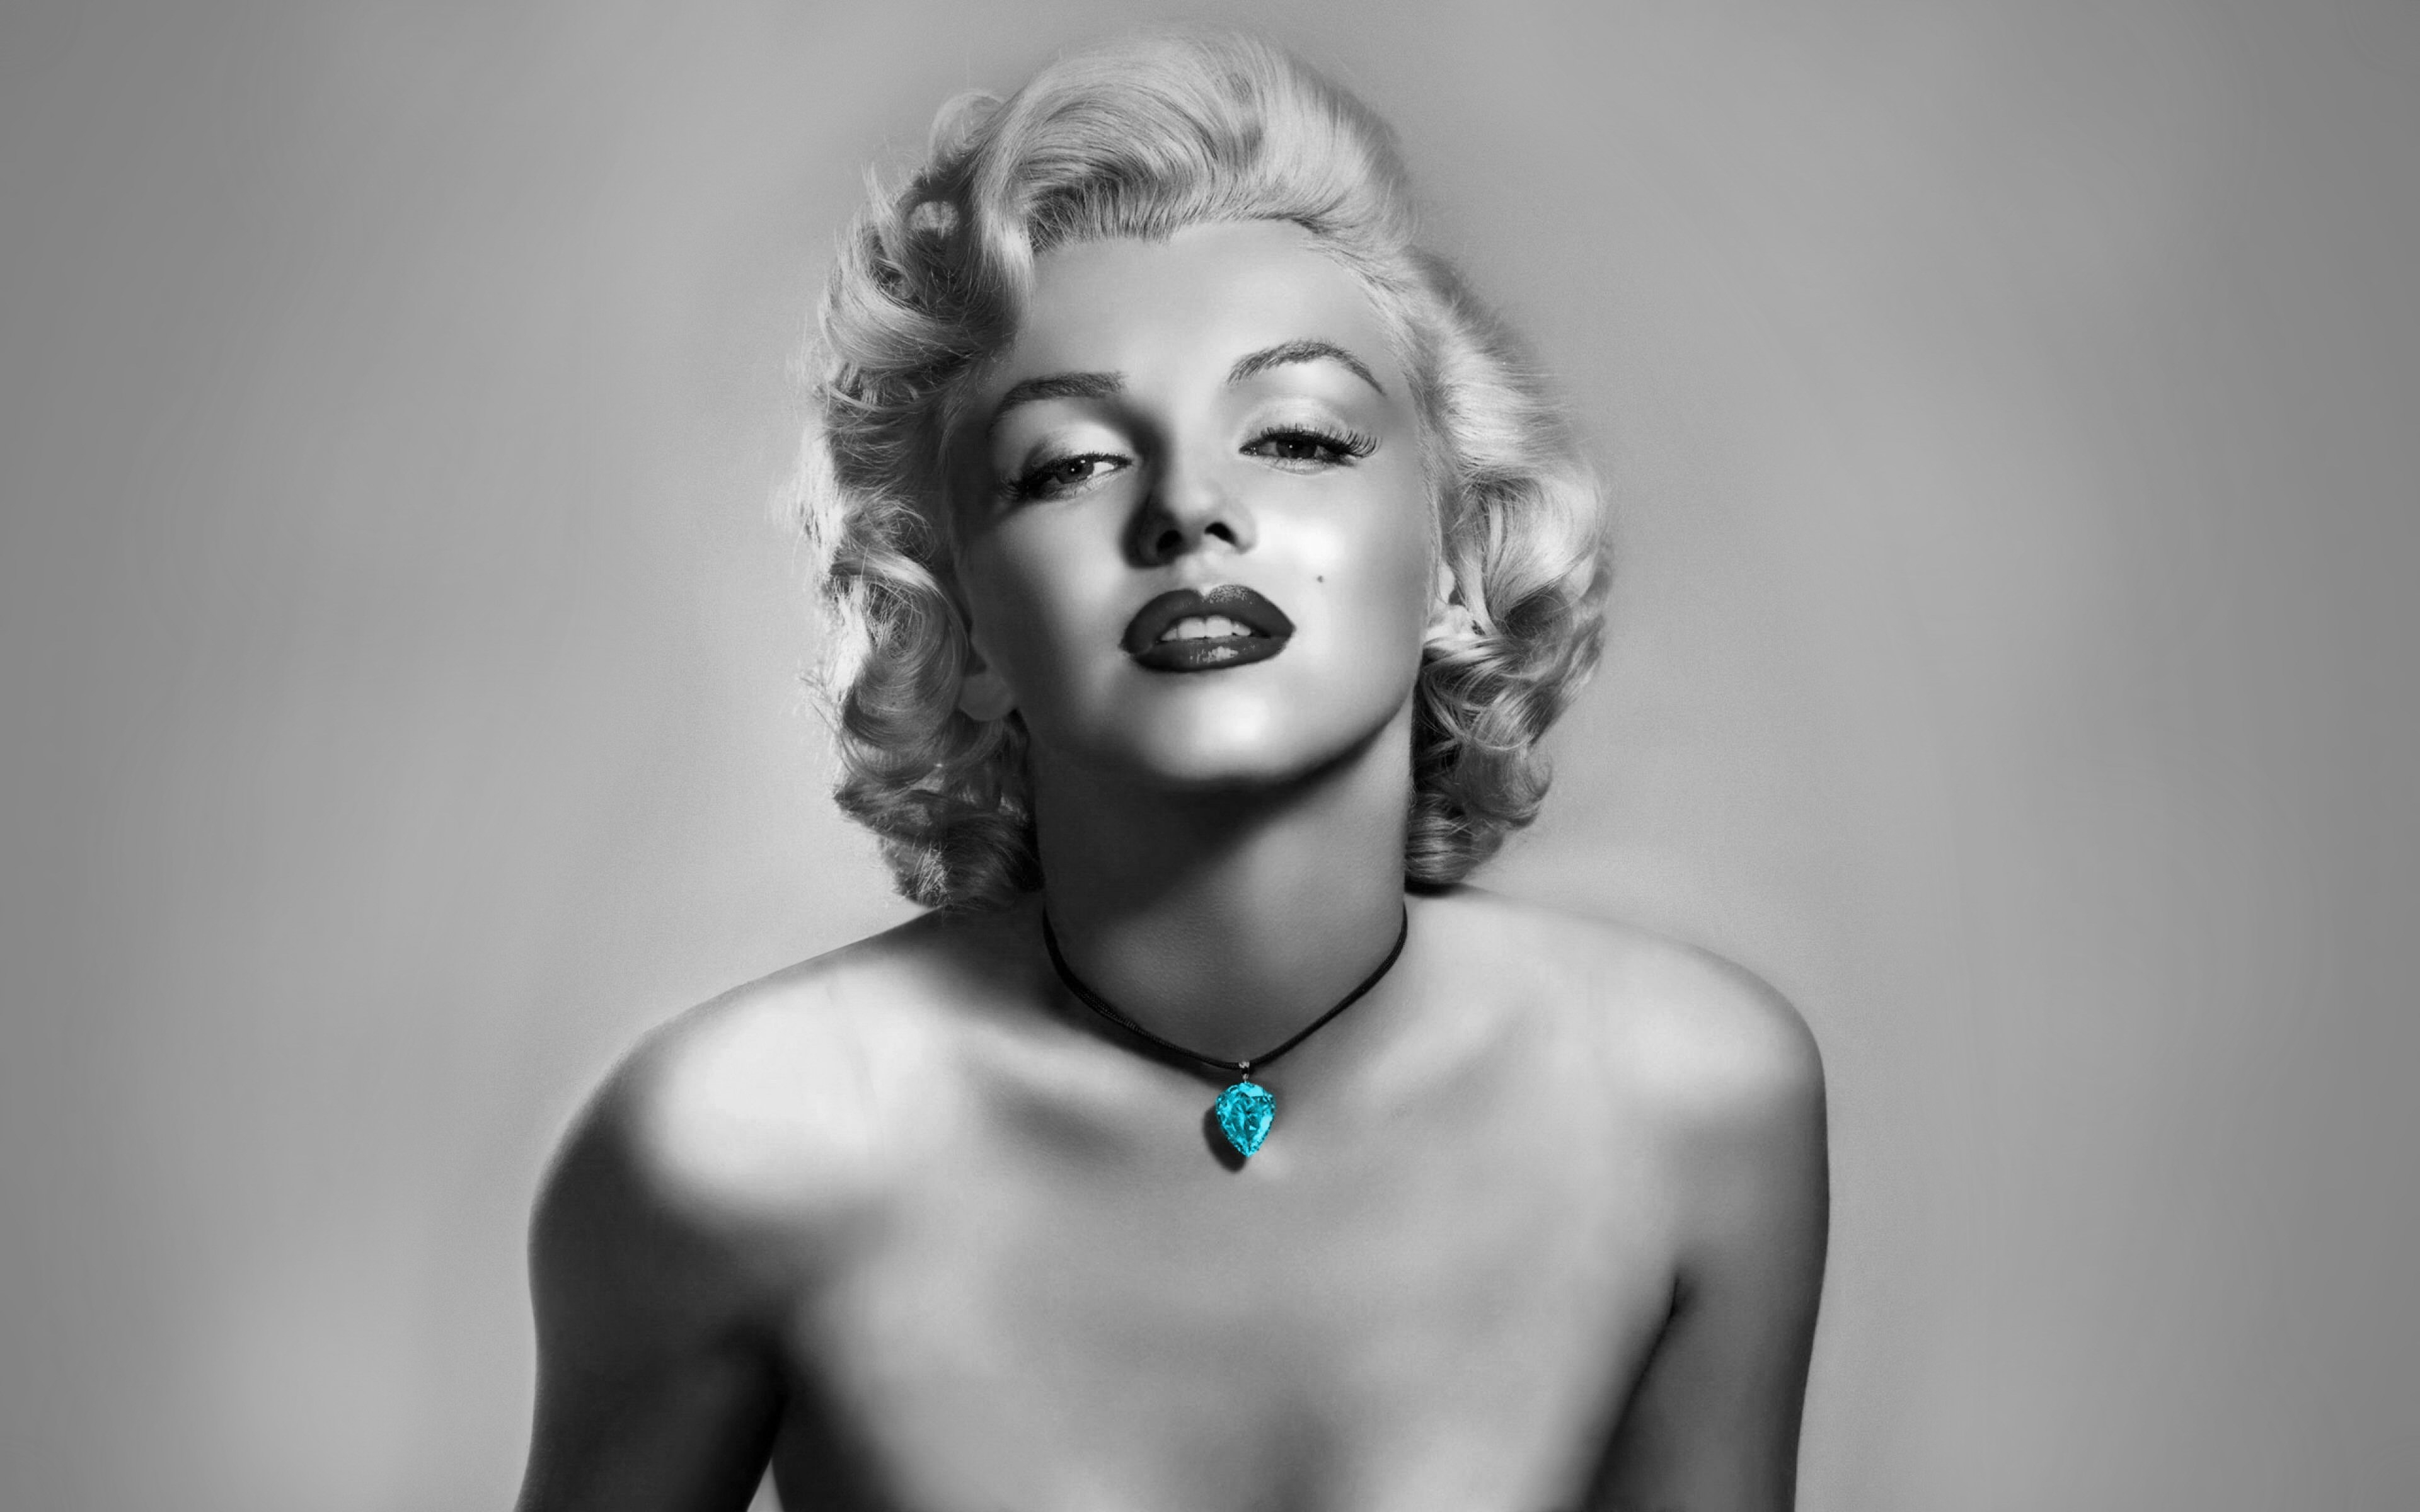 122 marilyn monroe hd wallpapers | background images - wallpaper abyss